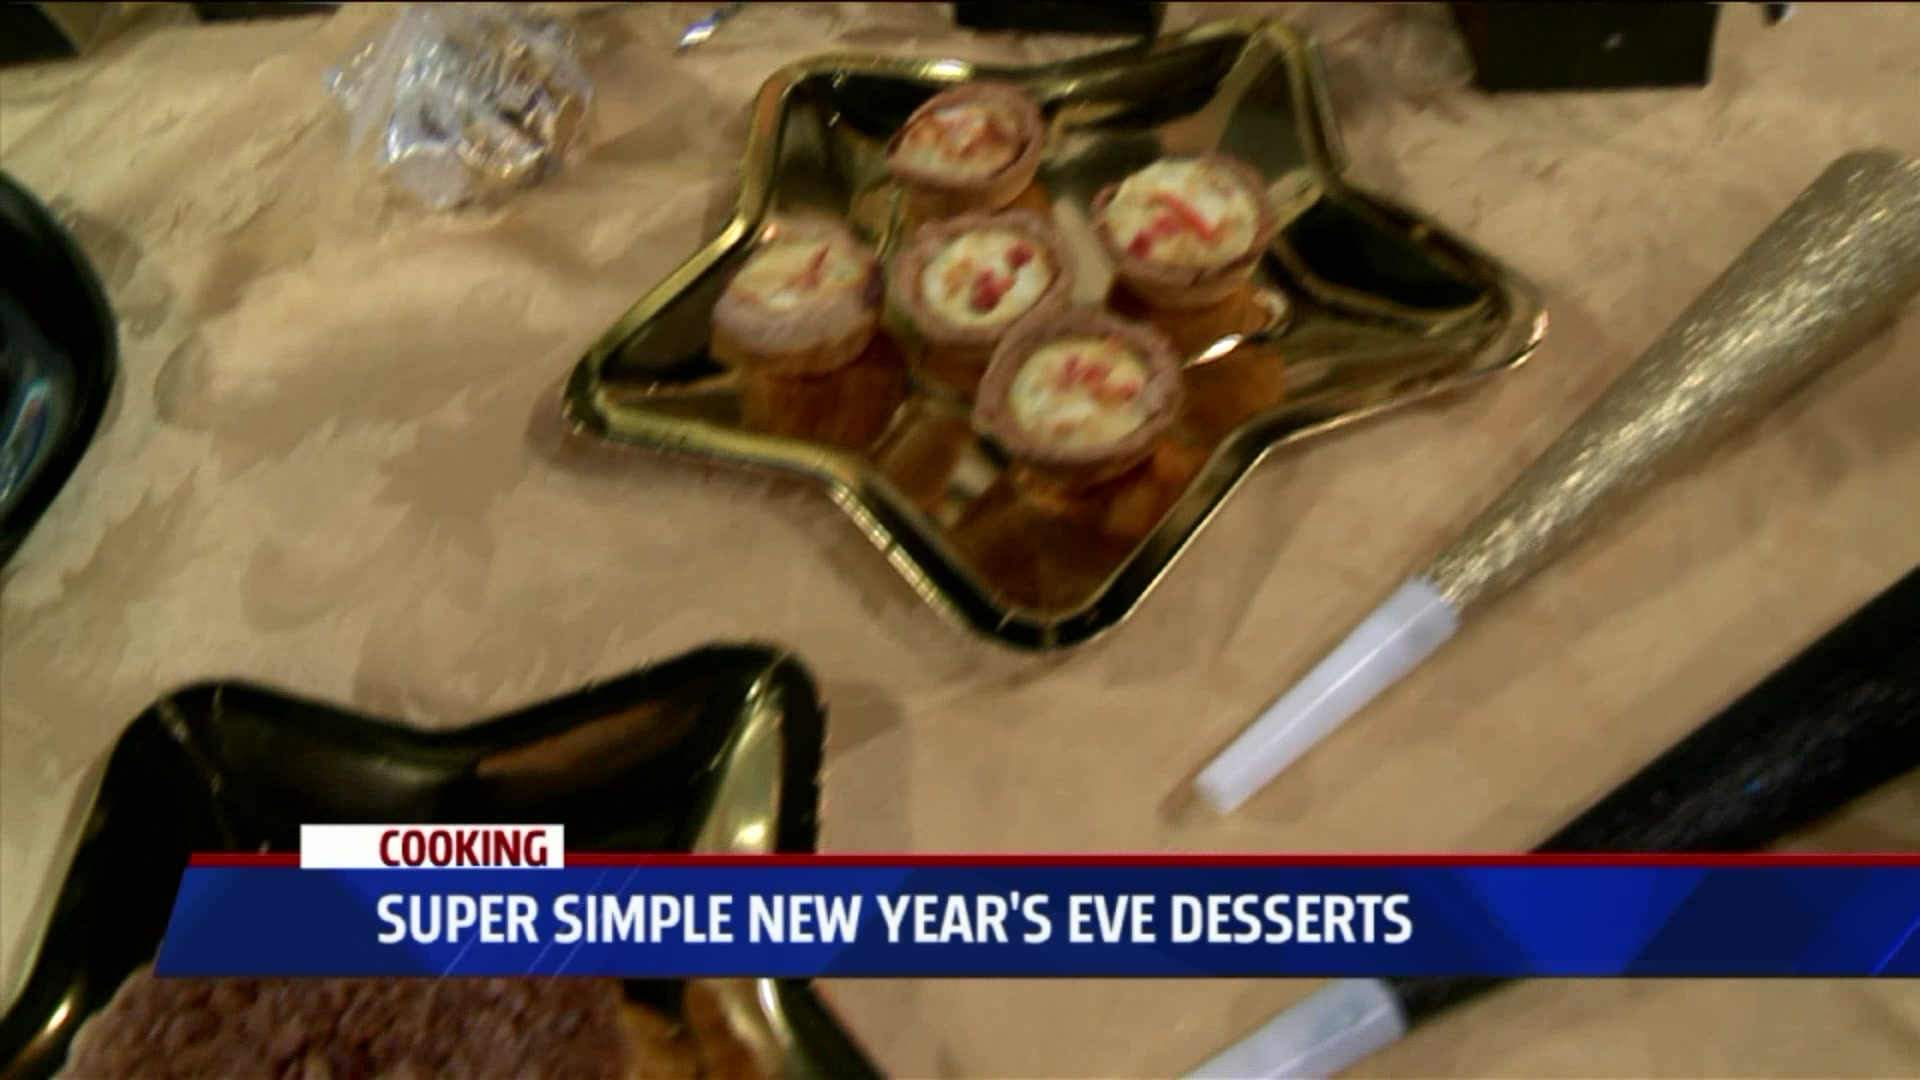 How to Make Super Simple New Year's Eve Desserts